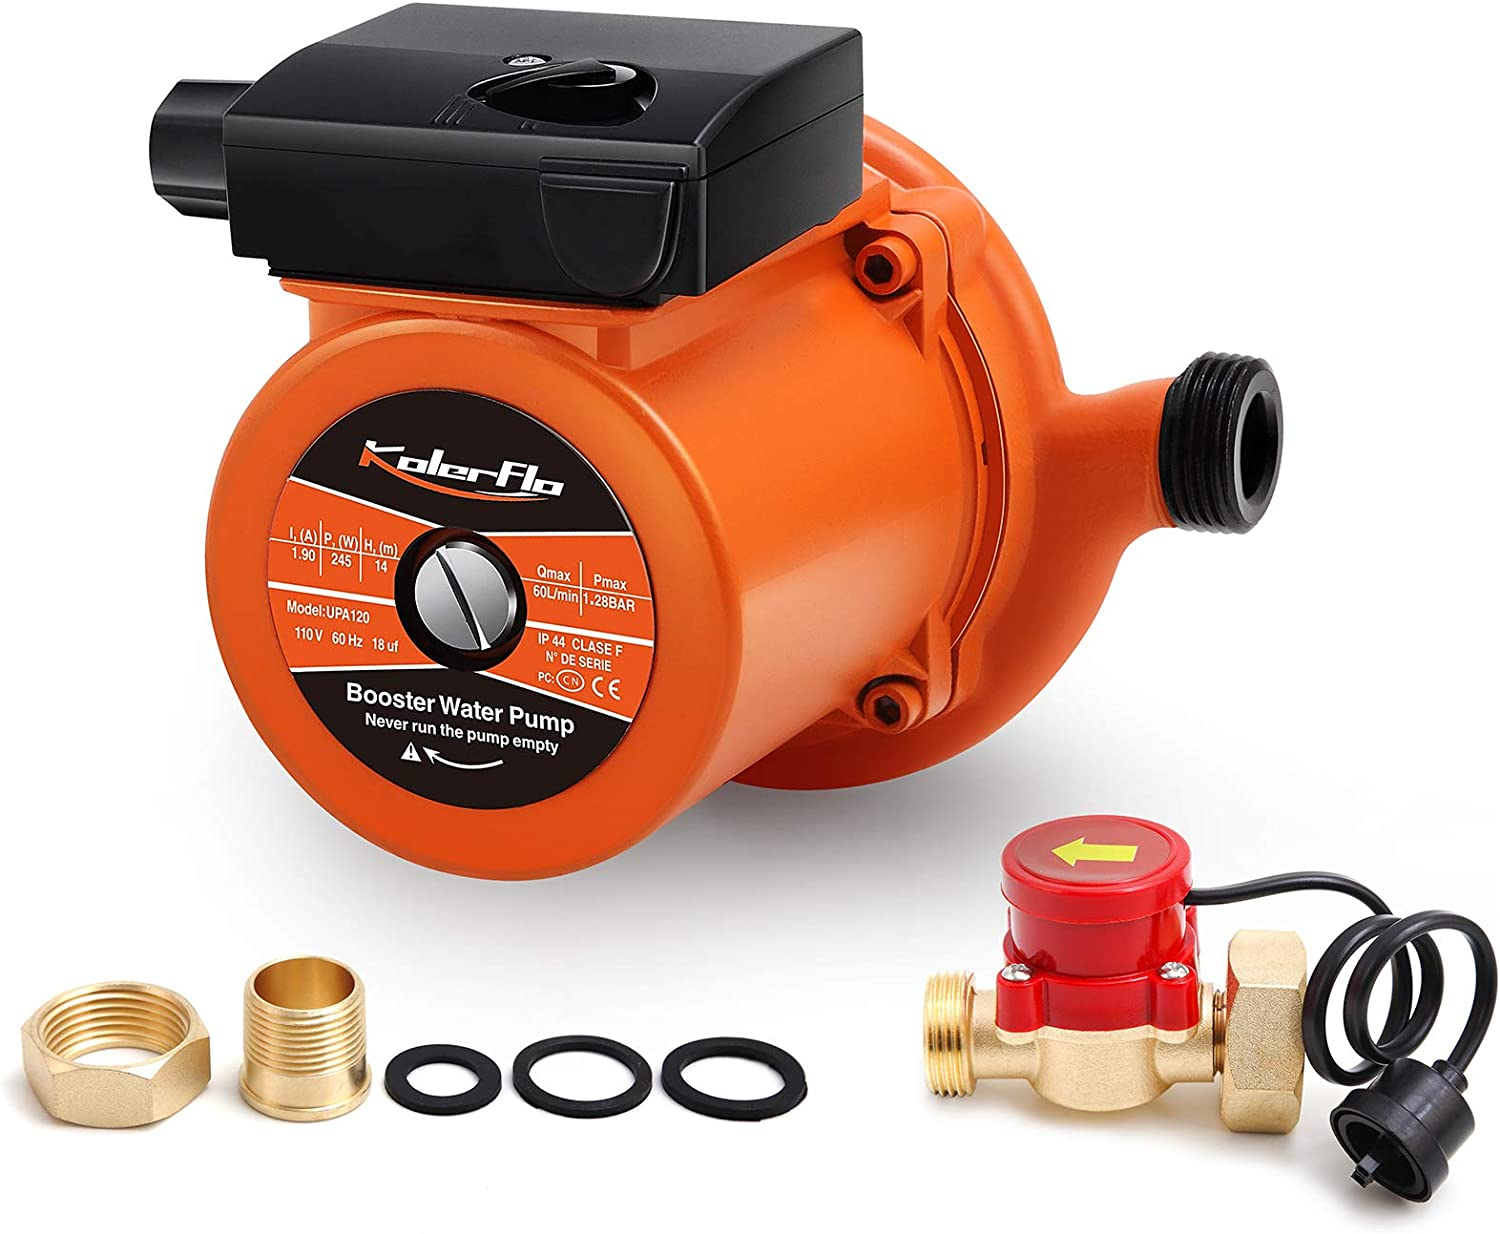 KOLERFLO Home Pressure Booster Pump 948 GPH,18.6 PSI Automatic Boost Pump with Water Flow Switch for Household (UPA120 Orange)